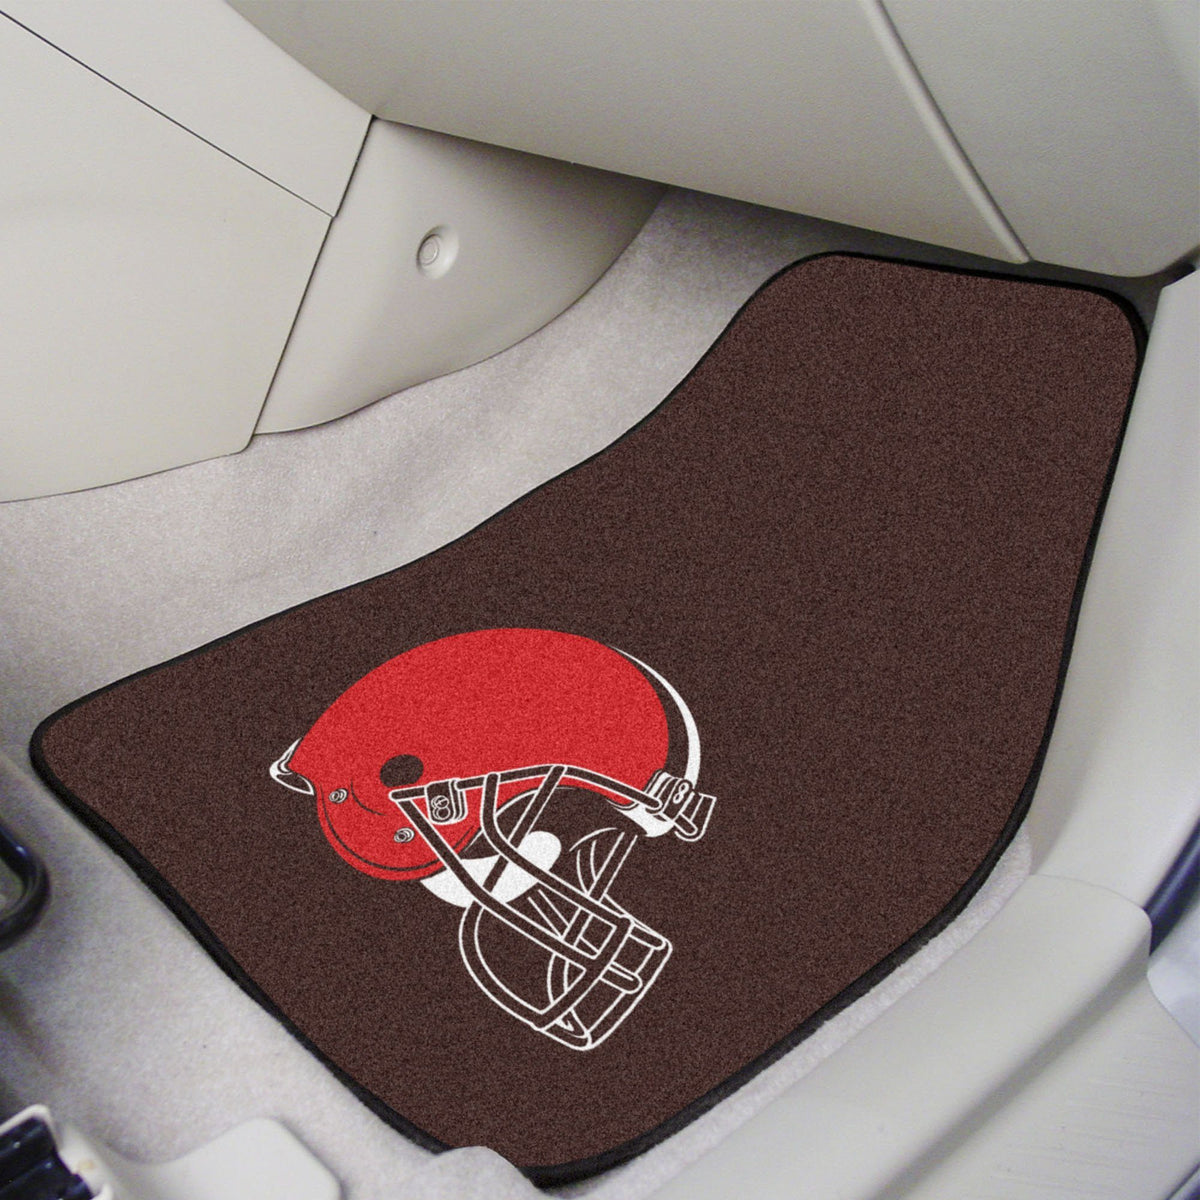 "NFL - 2-pc Carpet Car Mat Set, 17"" x 27"" NFL Mats, Front Car Mats, 2-pc Carpet Car Mat Set, NFL, Auto Fan Mats Cleveland Browns"